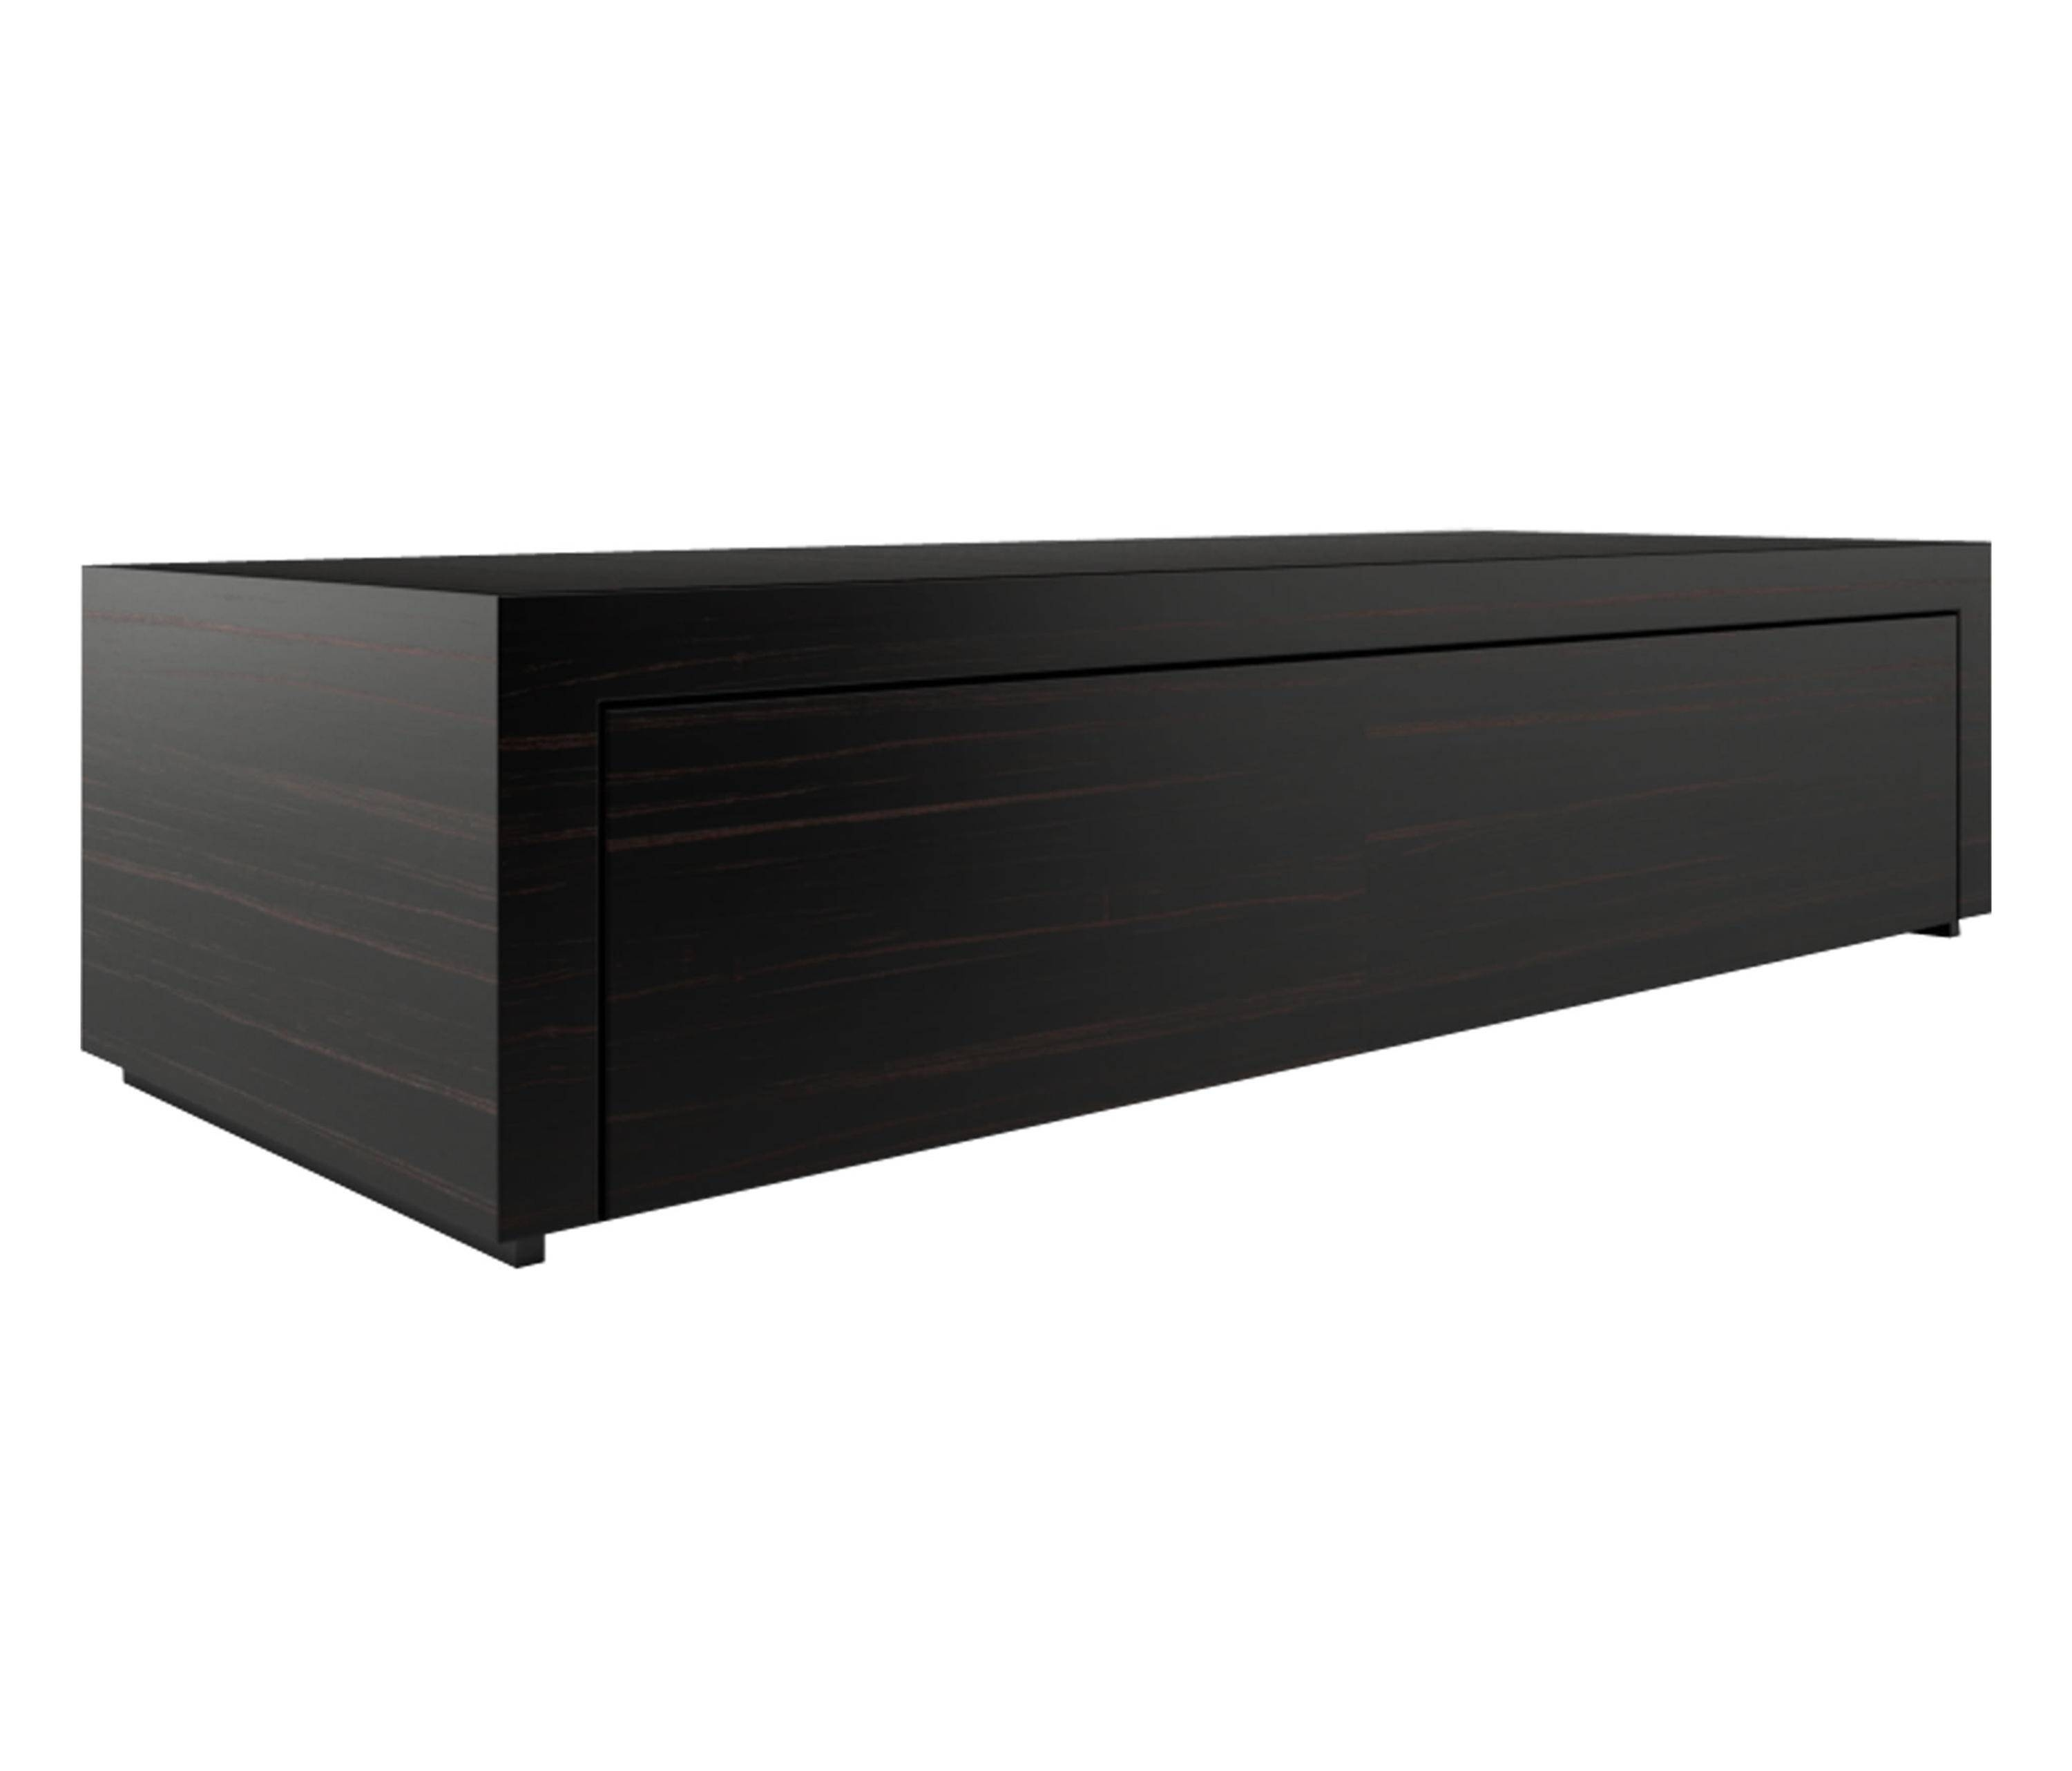 Repositio Tv/ Hifi Sideboard - Sideboards From Rechteck | Architonic regarding Tv Sideboards (Image 22 of 30)